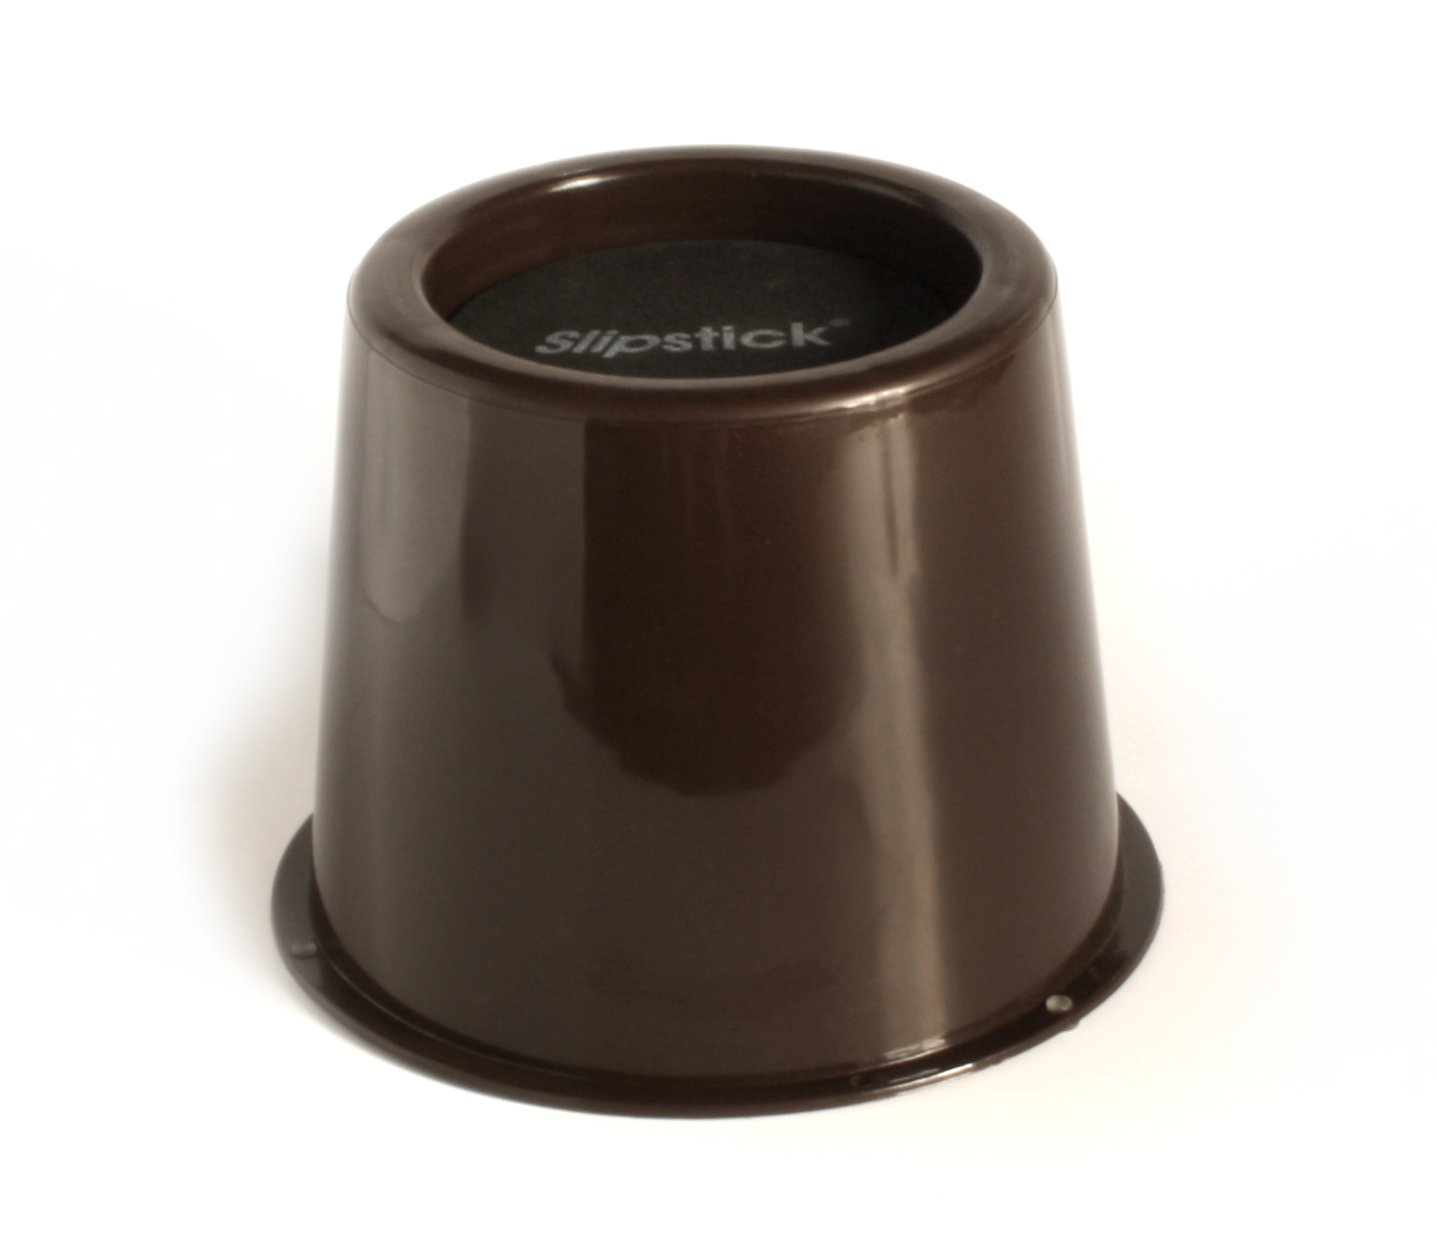 Adds 50 mm Height to of Bed Risers Slipstick CB654 5 cm Lift Furniture Risers